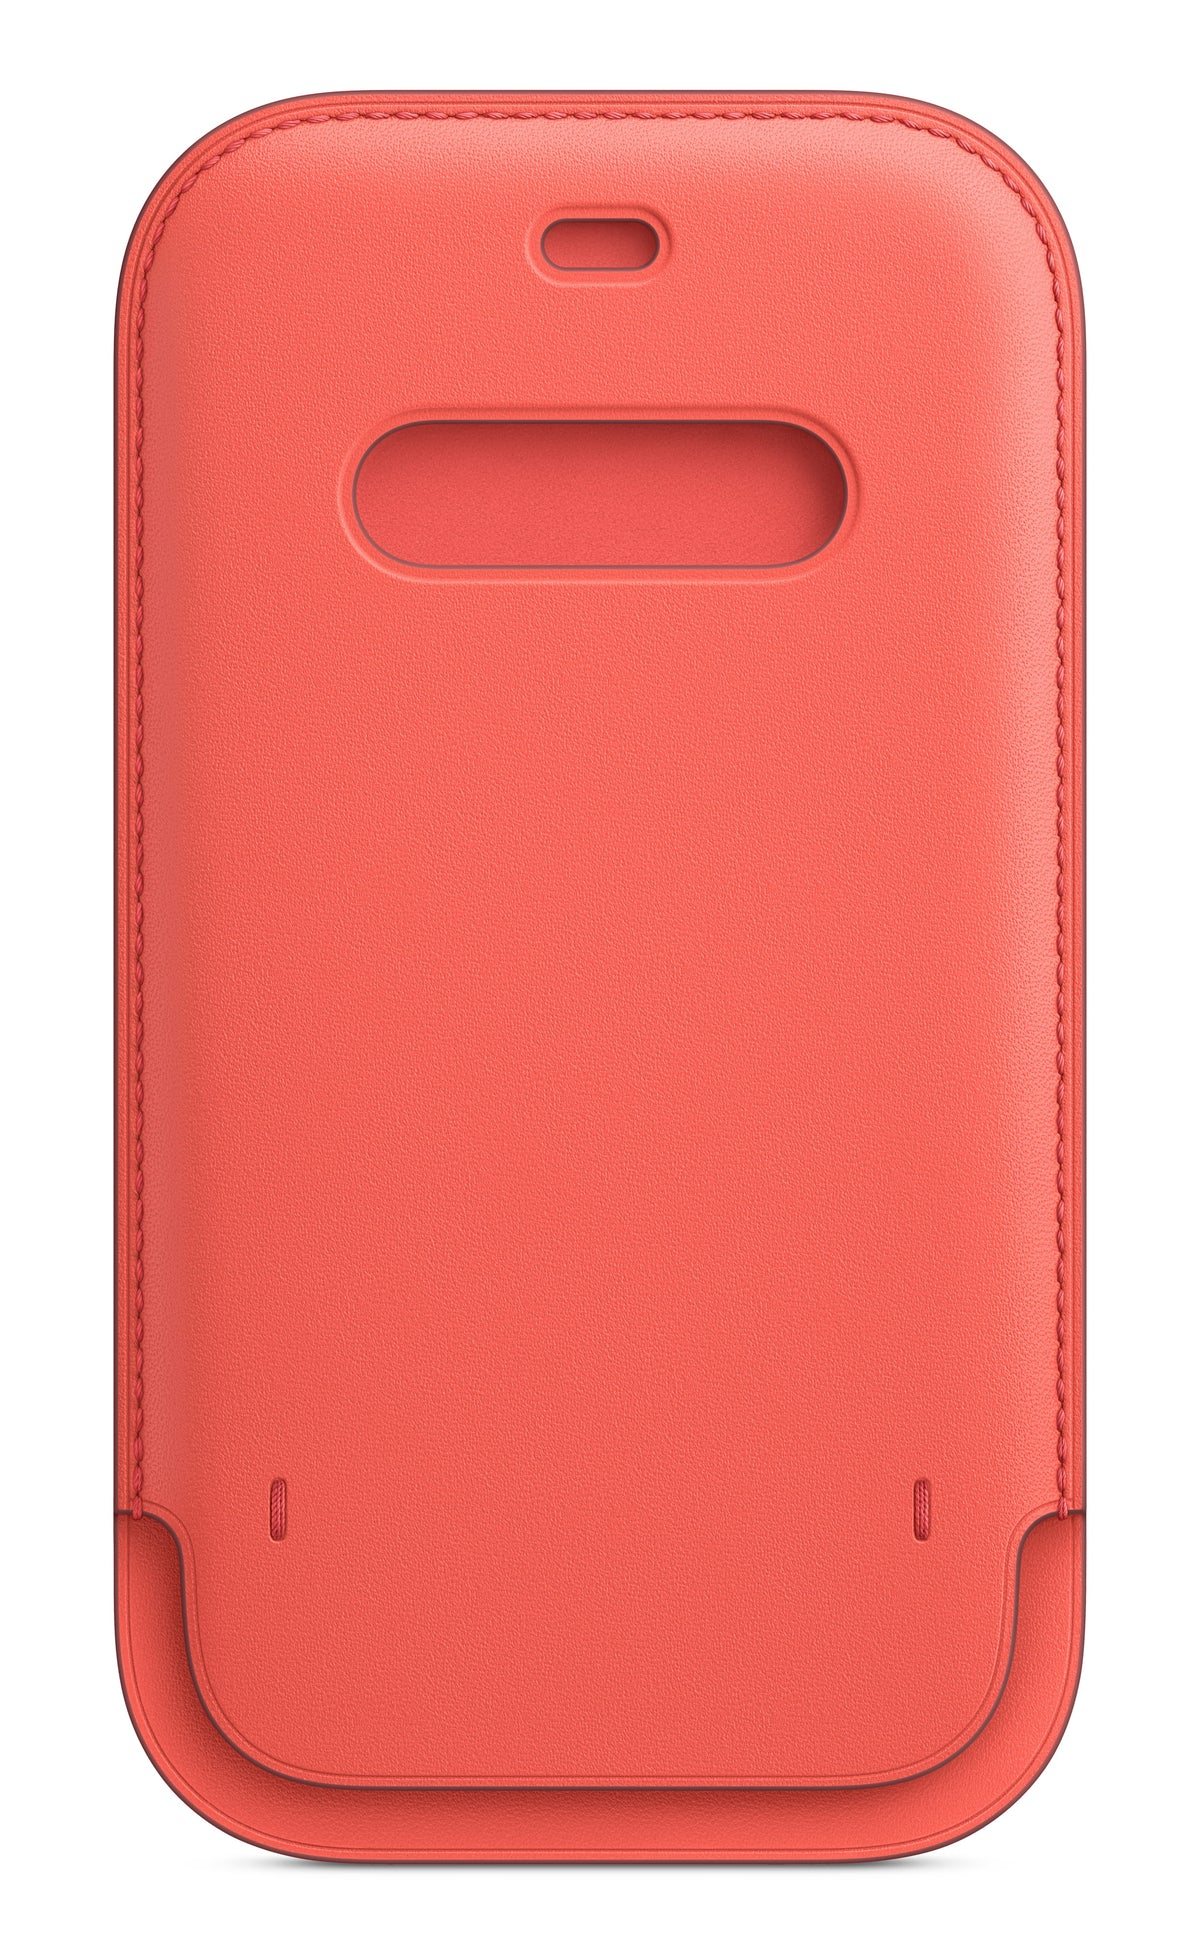 iPhone 12 Pro Max Leather Sleeve with MagSafe - Pink Citrus